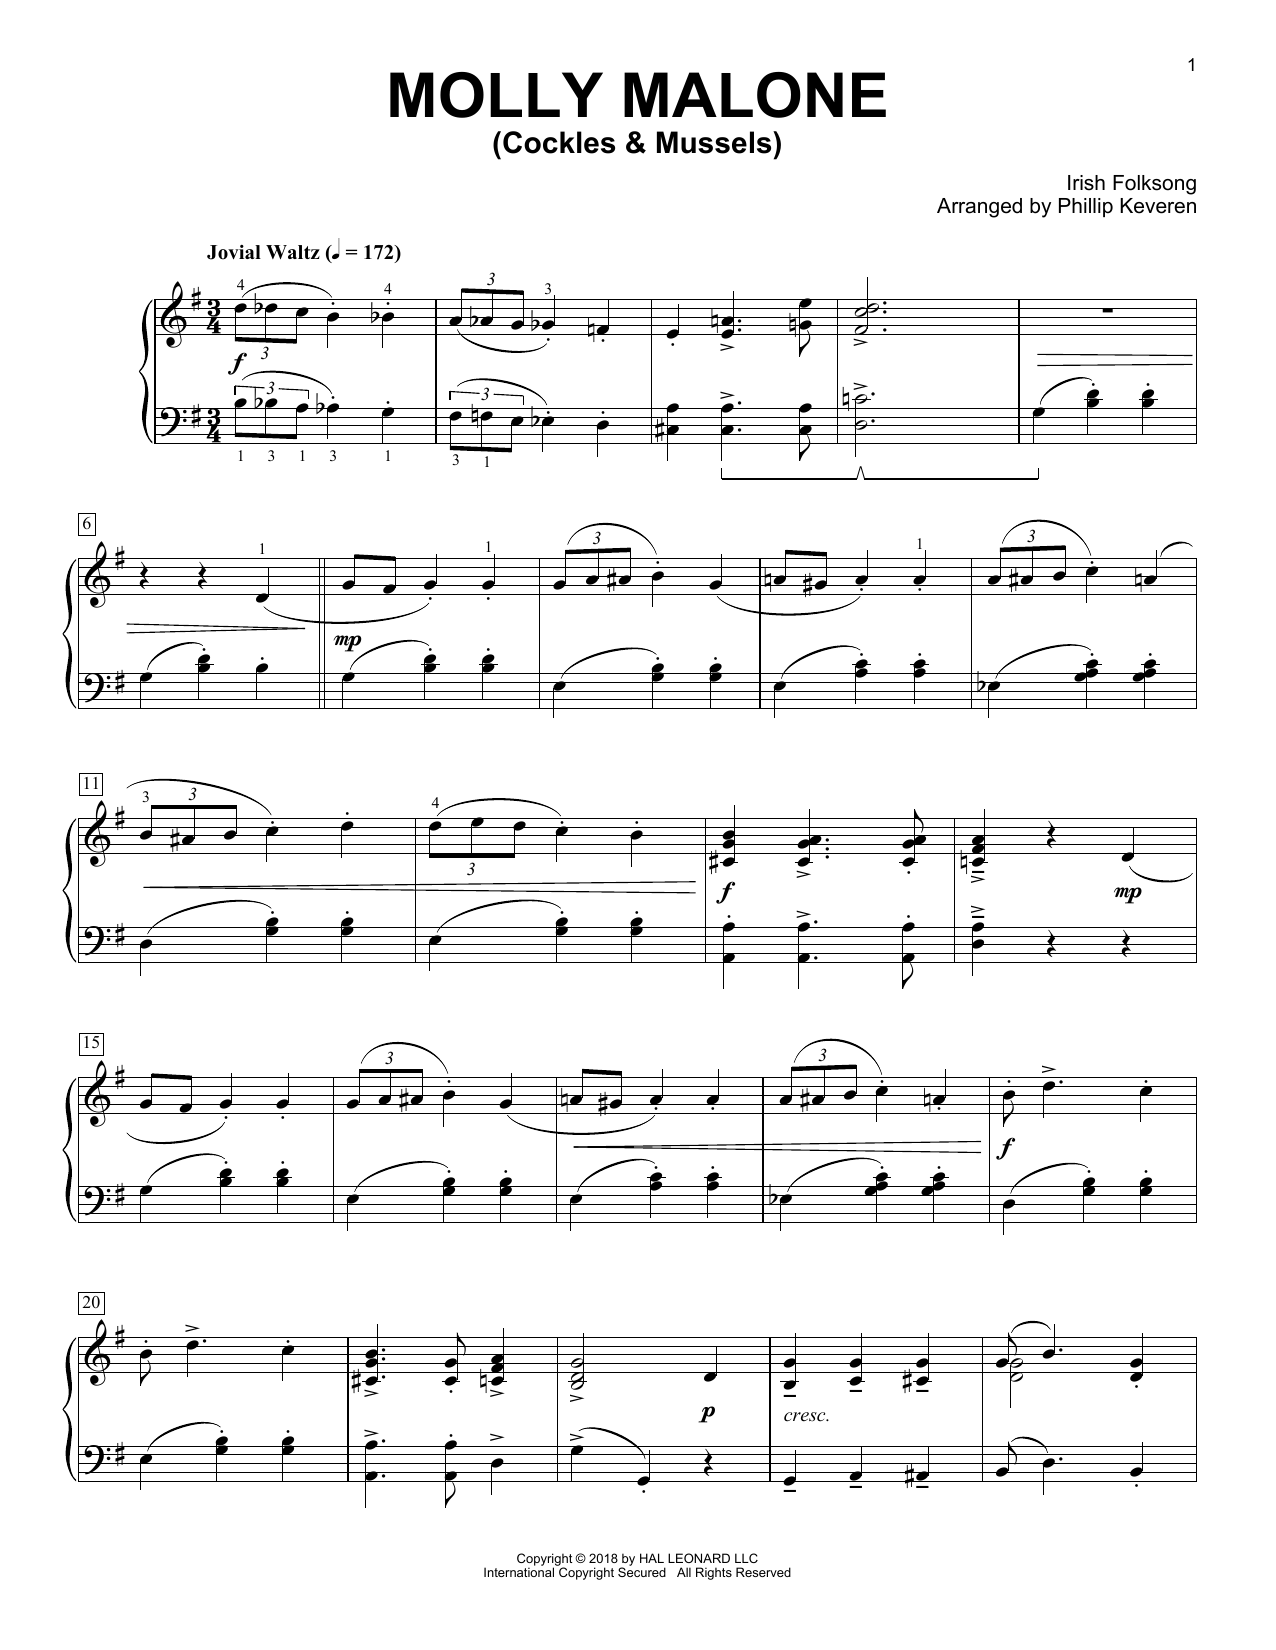 Irish Folksong Molly Malone (Cockles & Mussels) [Classical version] (arr. Phillip Keveren) sheet music notes and chords. Download Printable PDF.